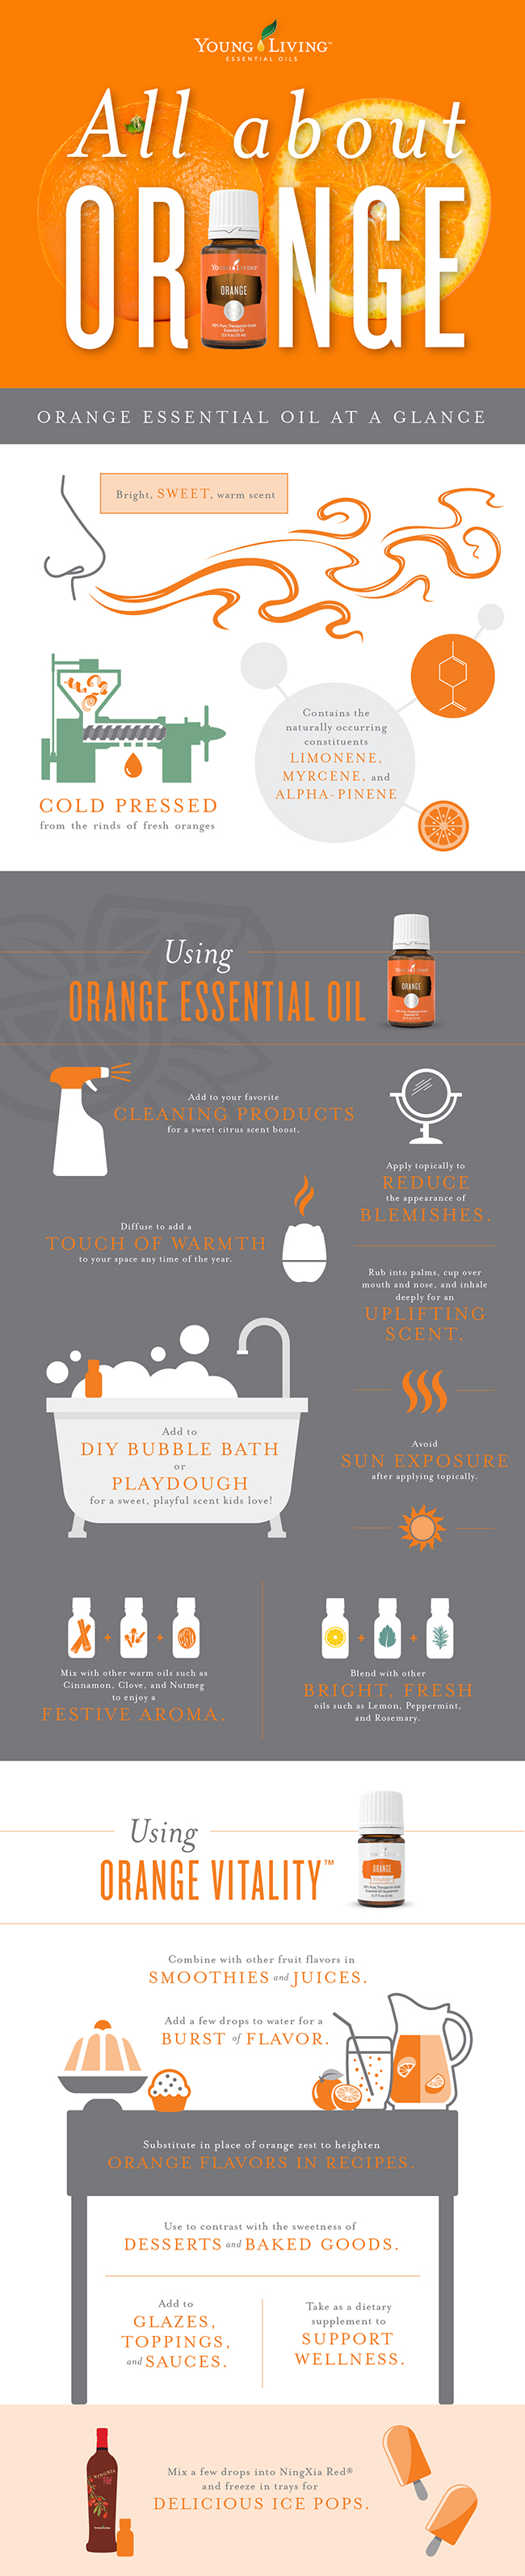 All About Orange Infographic